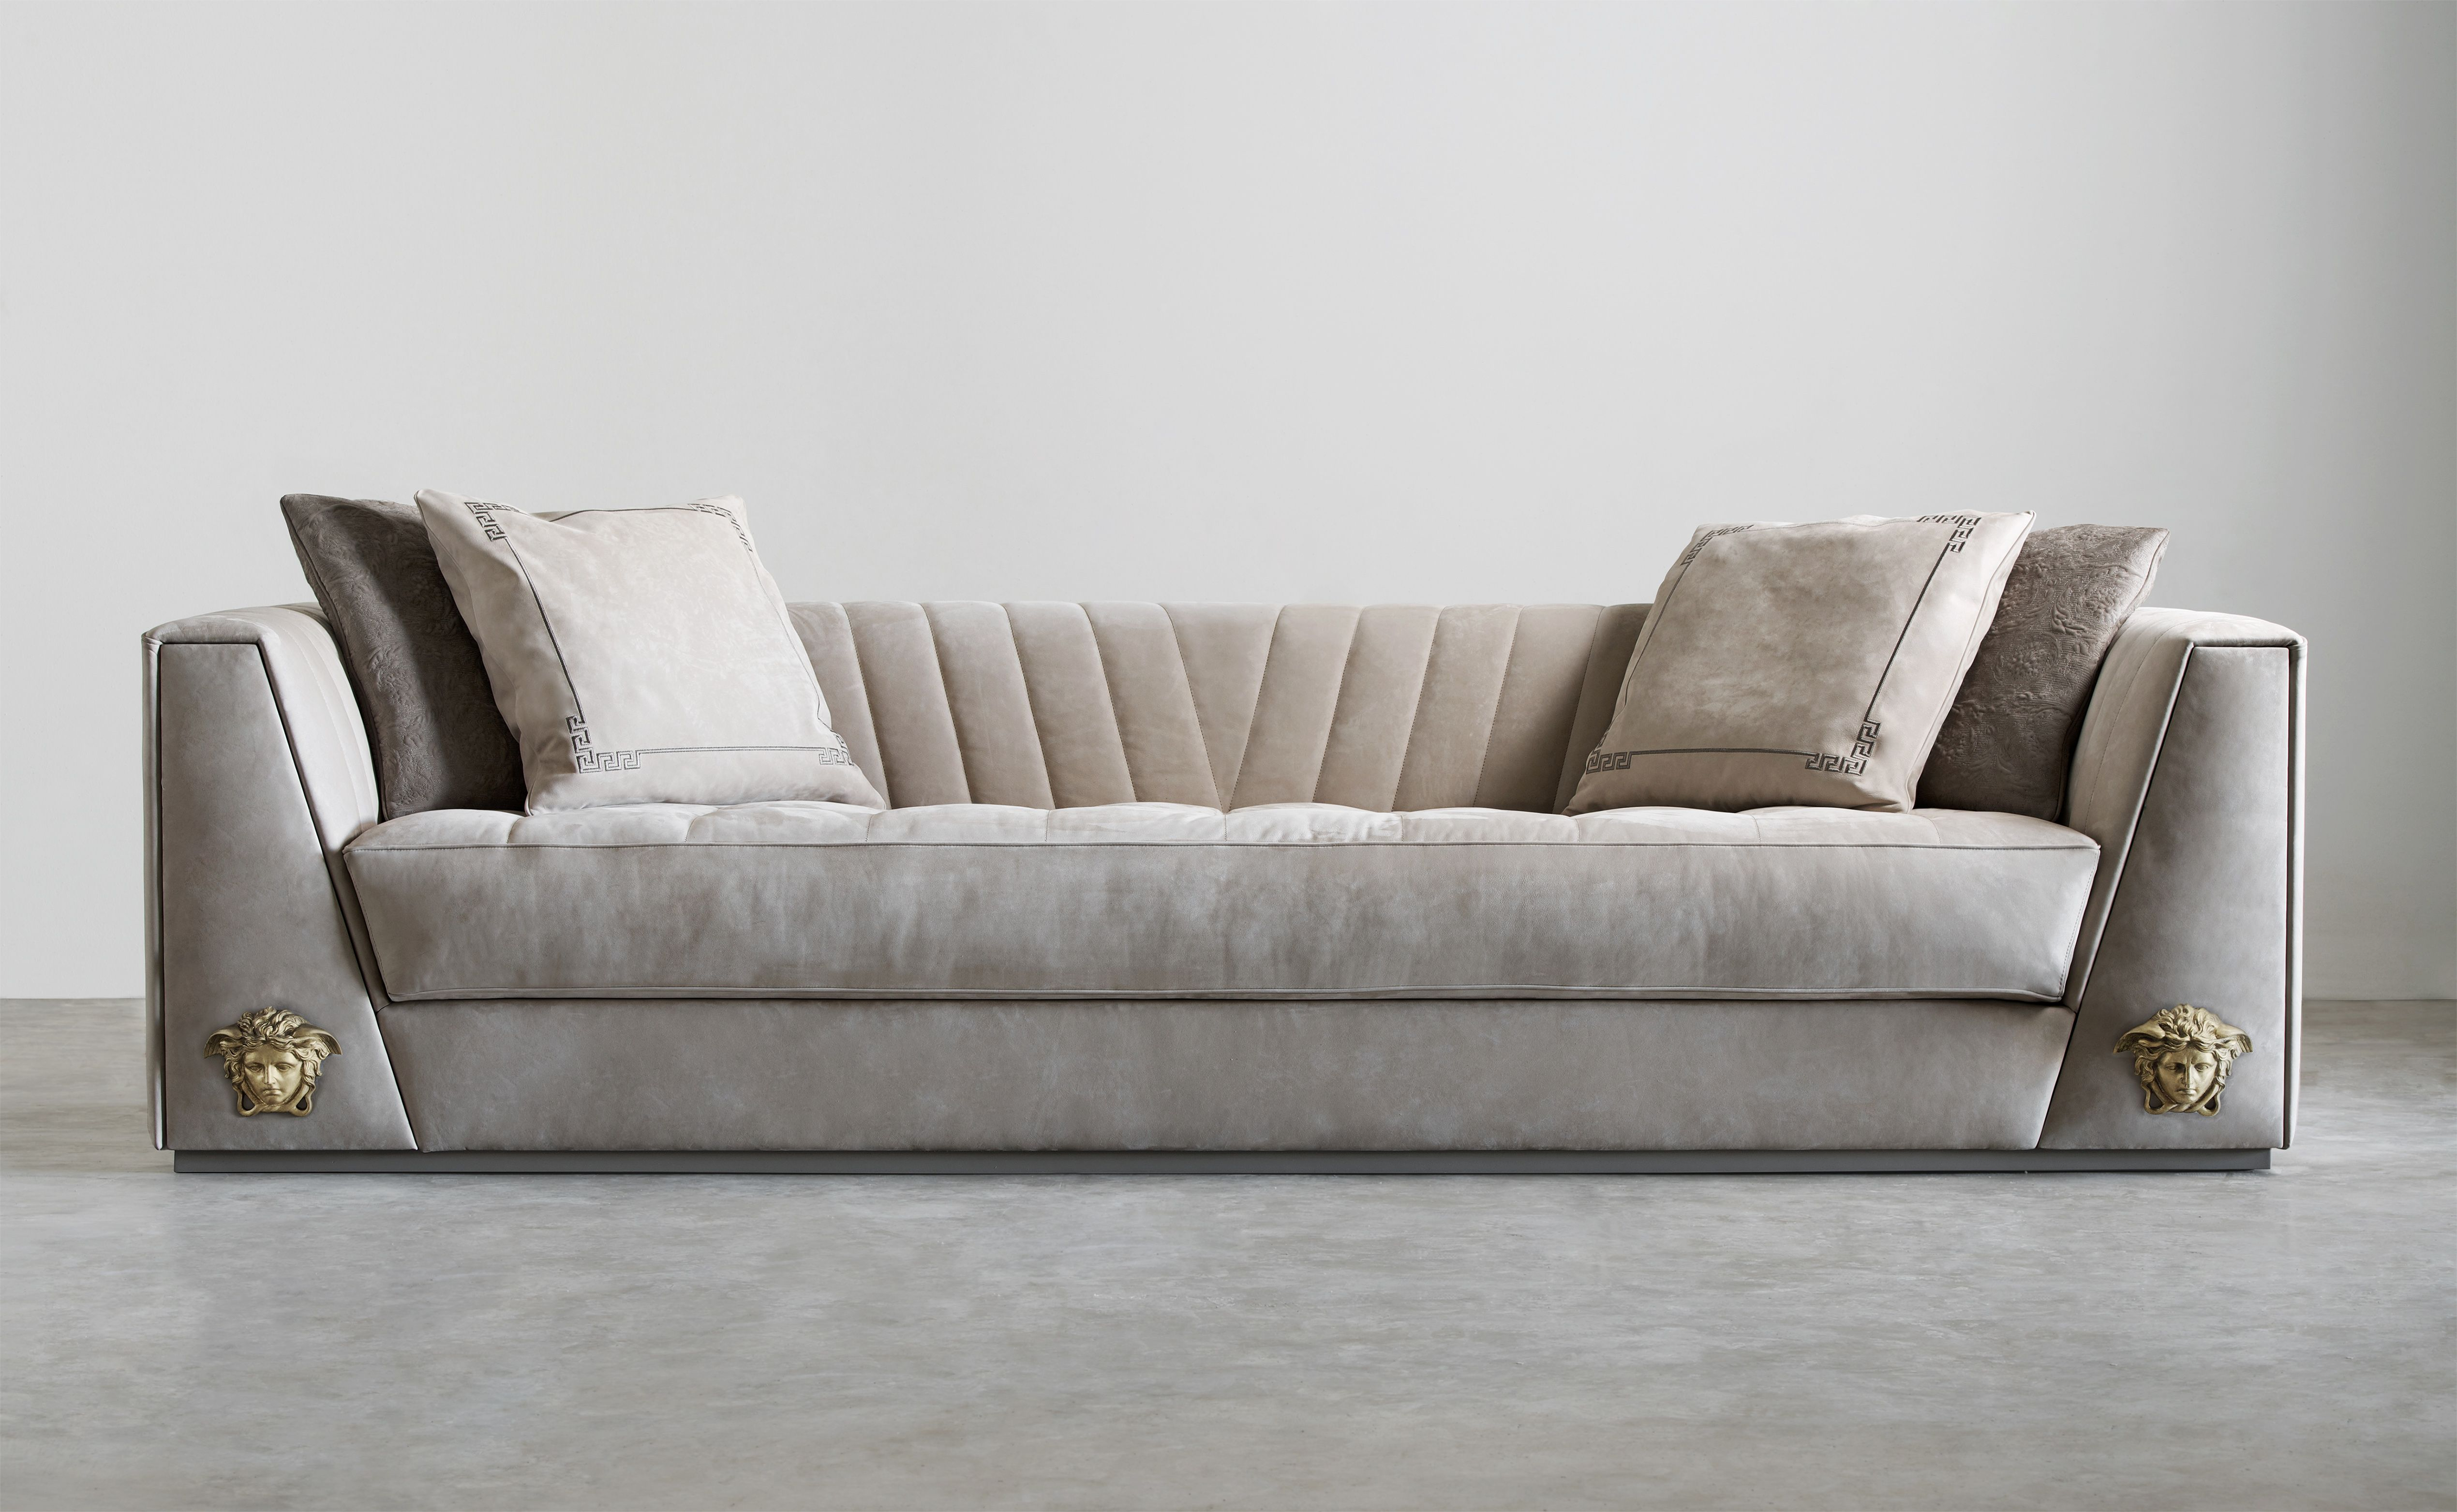 Versace Living Room Furniture At The Heart Of The New Range Is The Via Gesa1 Sofa Defined By The